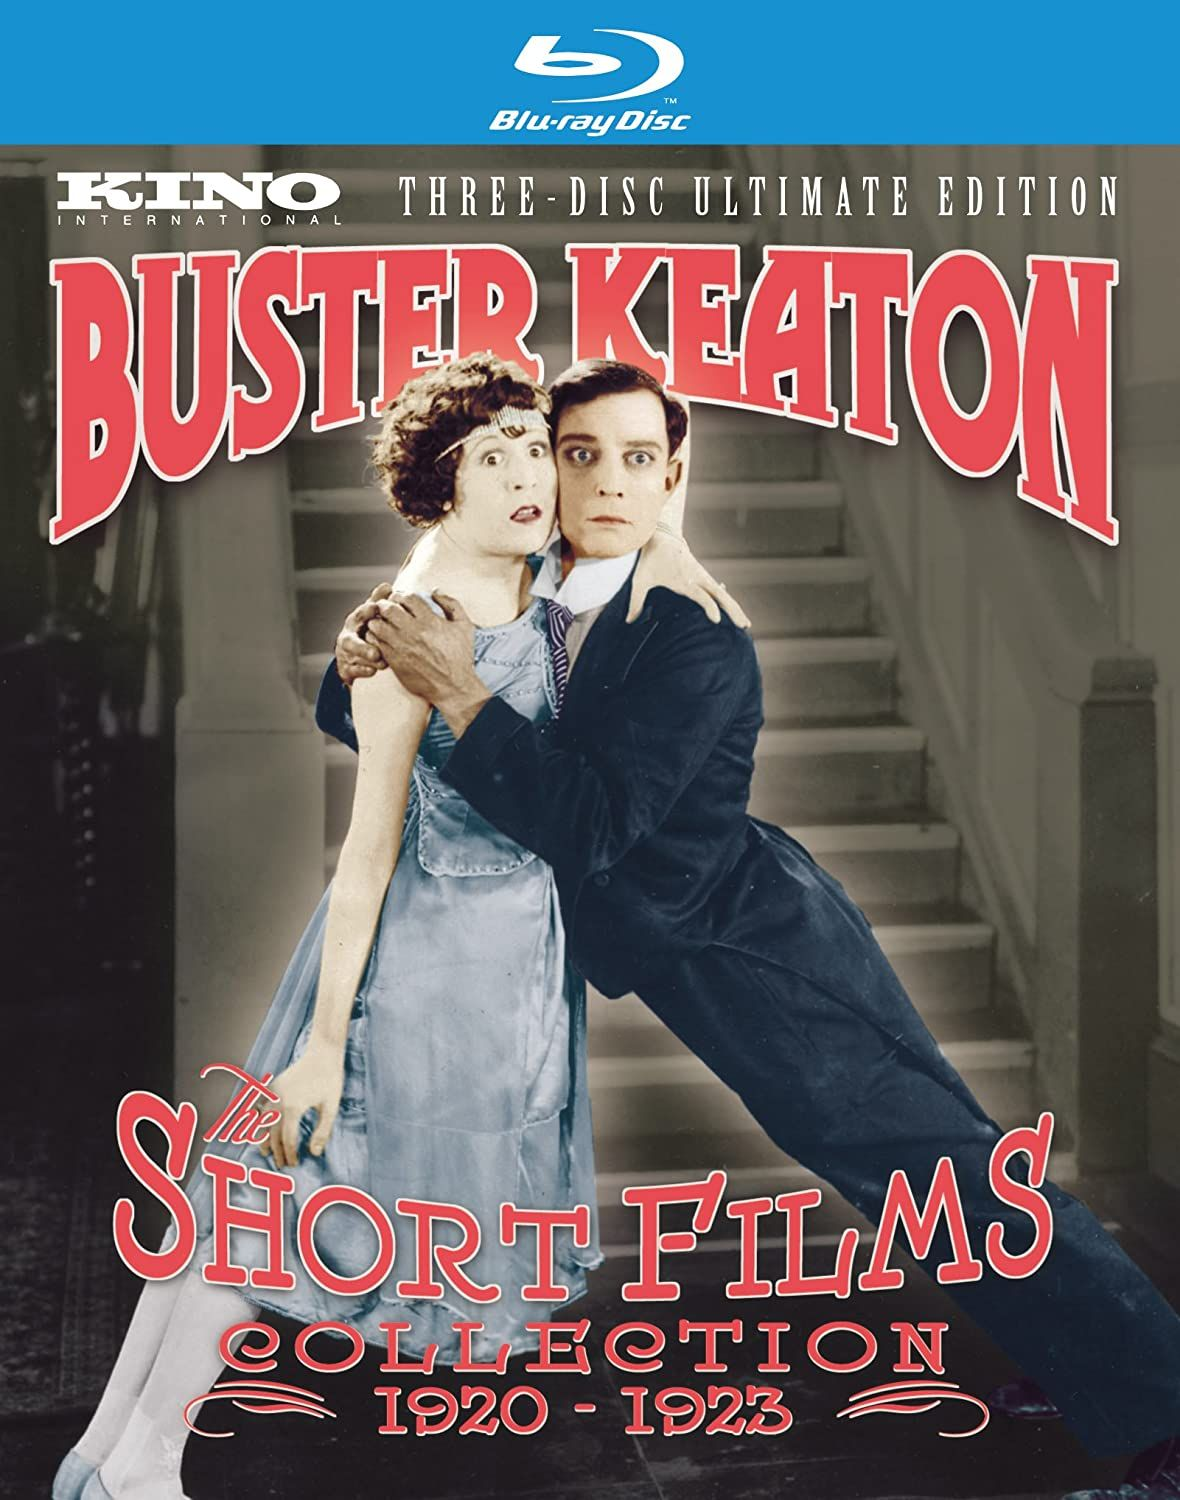 Buster Keaton Short Films Collection 3-Disc Ultimate Edition 1920-1923 Blu-ray 1080p AVC LPCM 2 0-HDCLUB